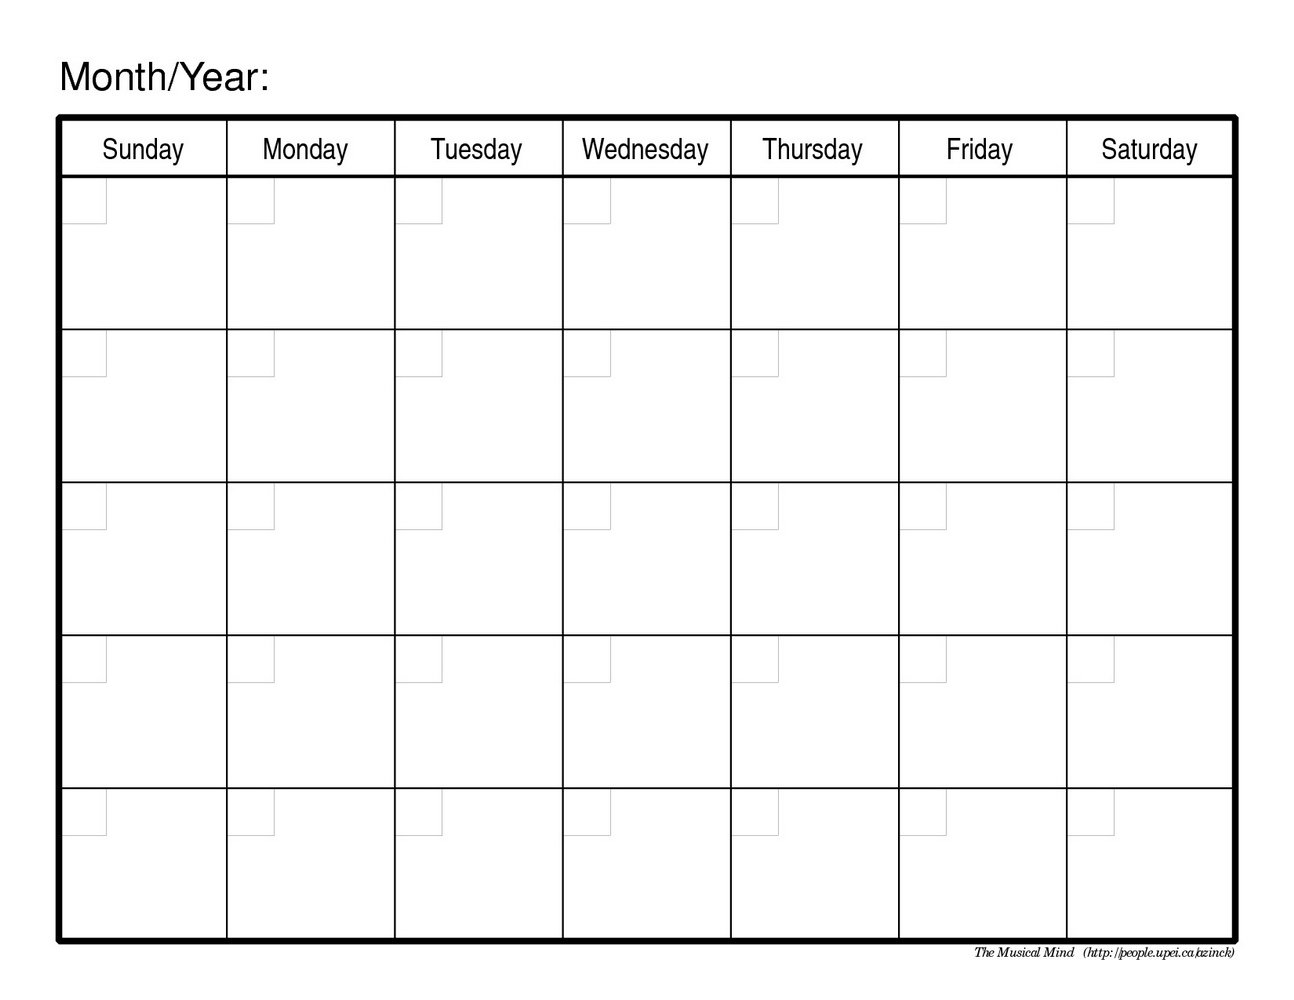 Monthly Scheduling Calendar Template